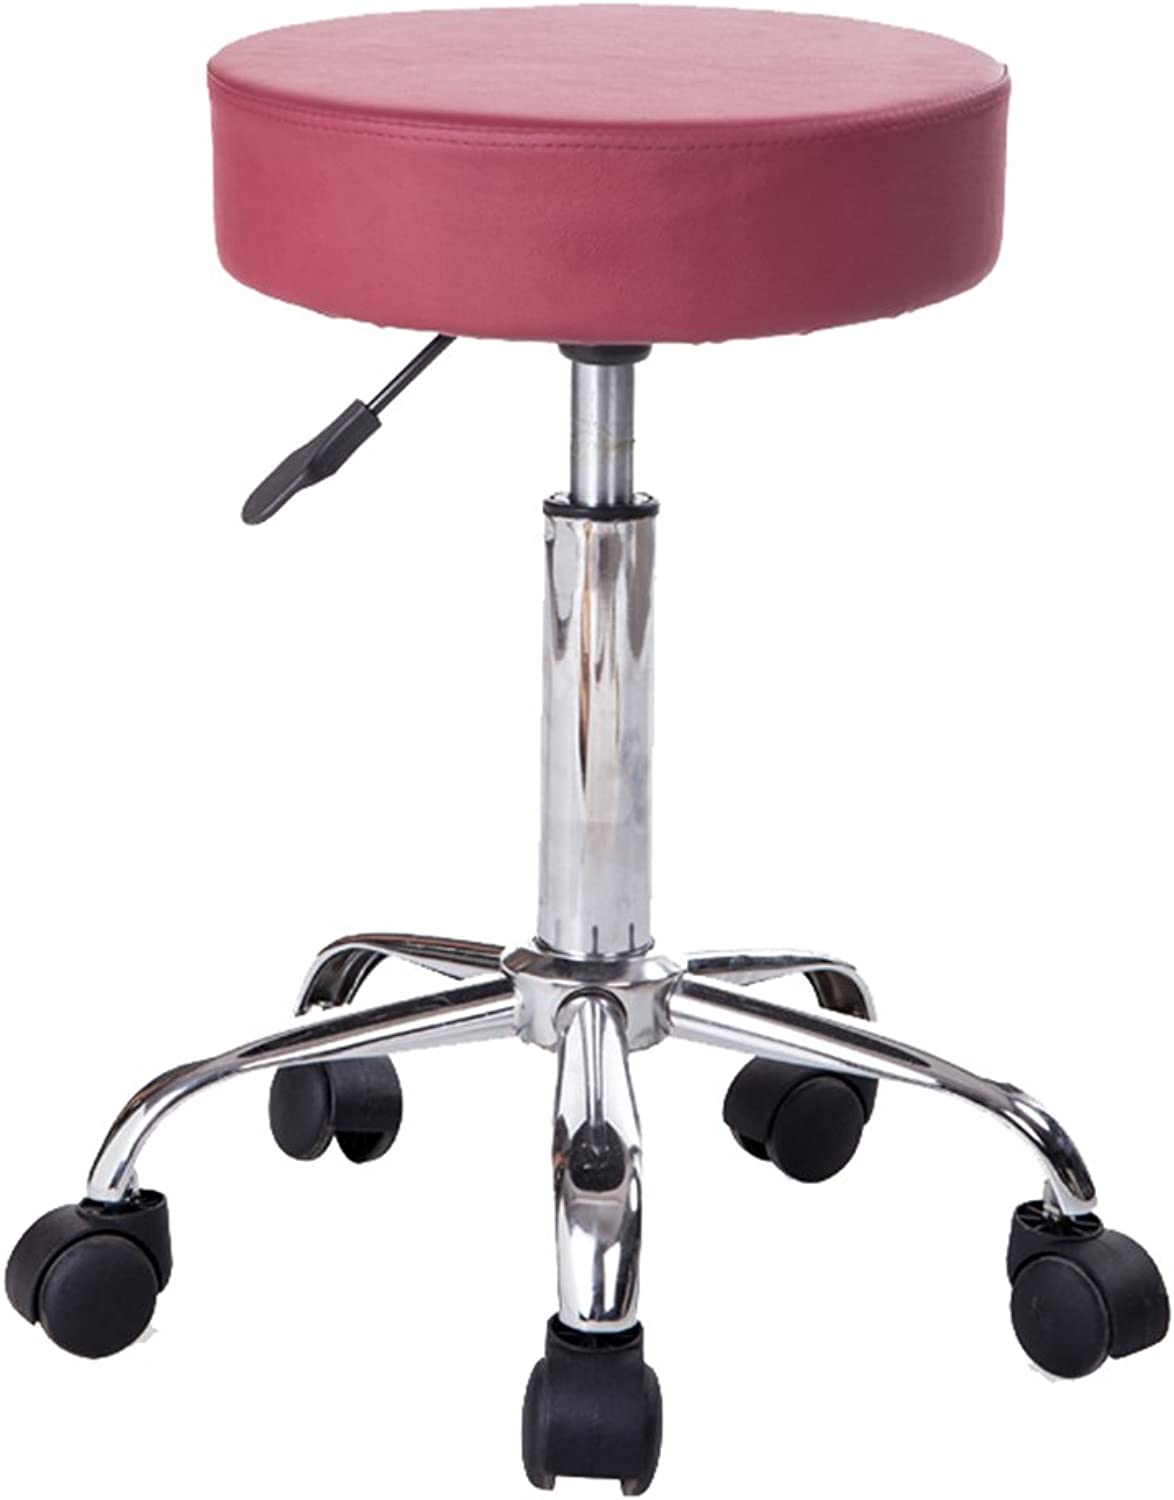 Office Chairs Desk Chairs Home Office Furniture Office Chair Swivel Chair Lifting Stool Beauty Stool Bar Stool (color   Red, Size   35  9  52cm)